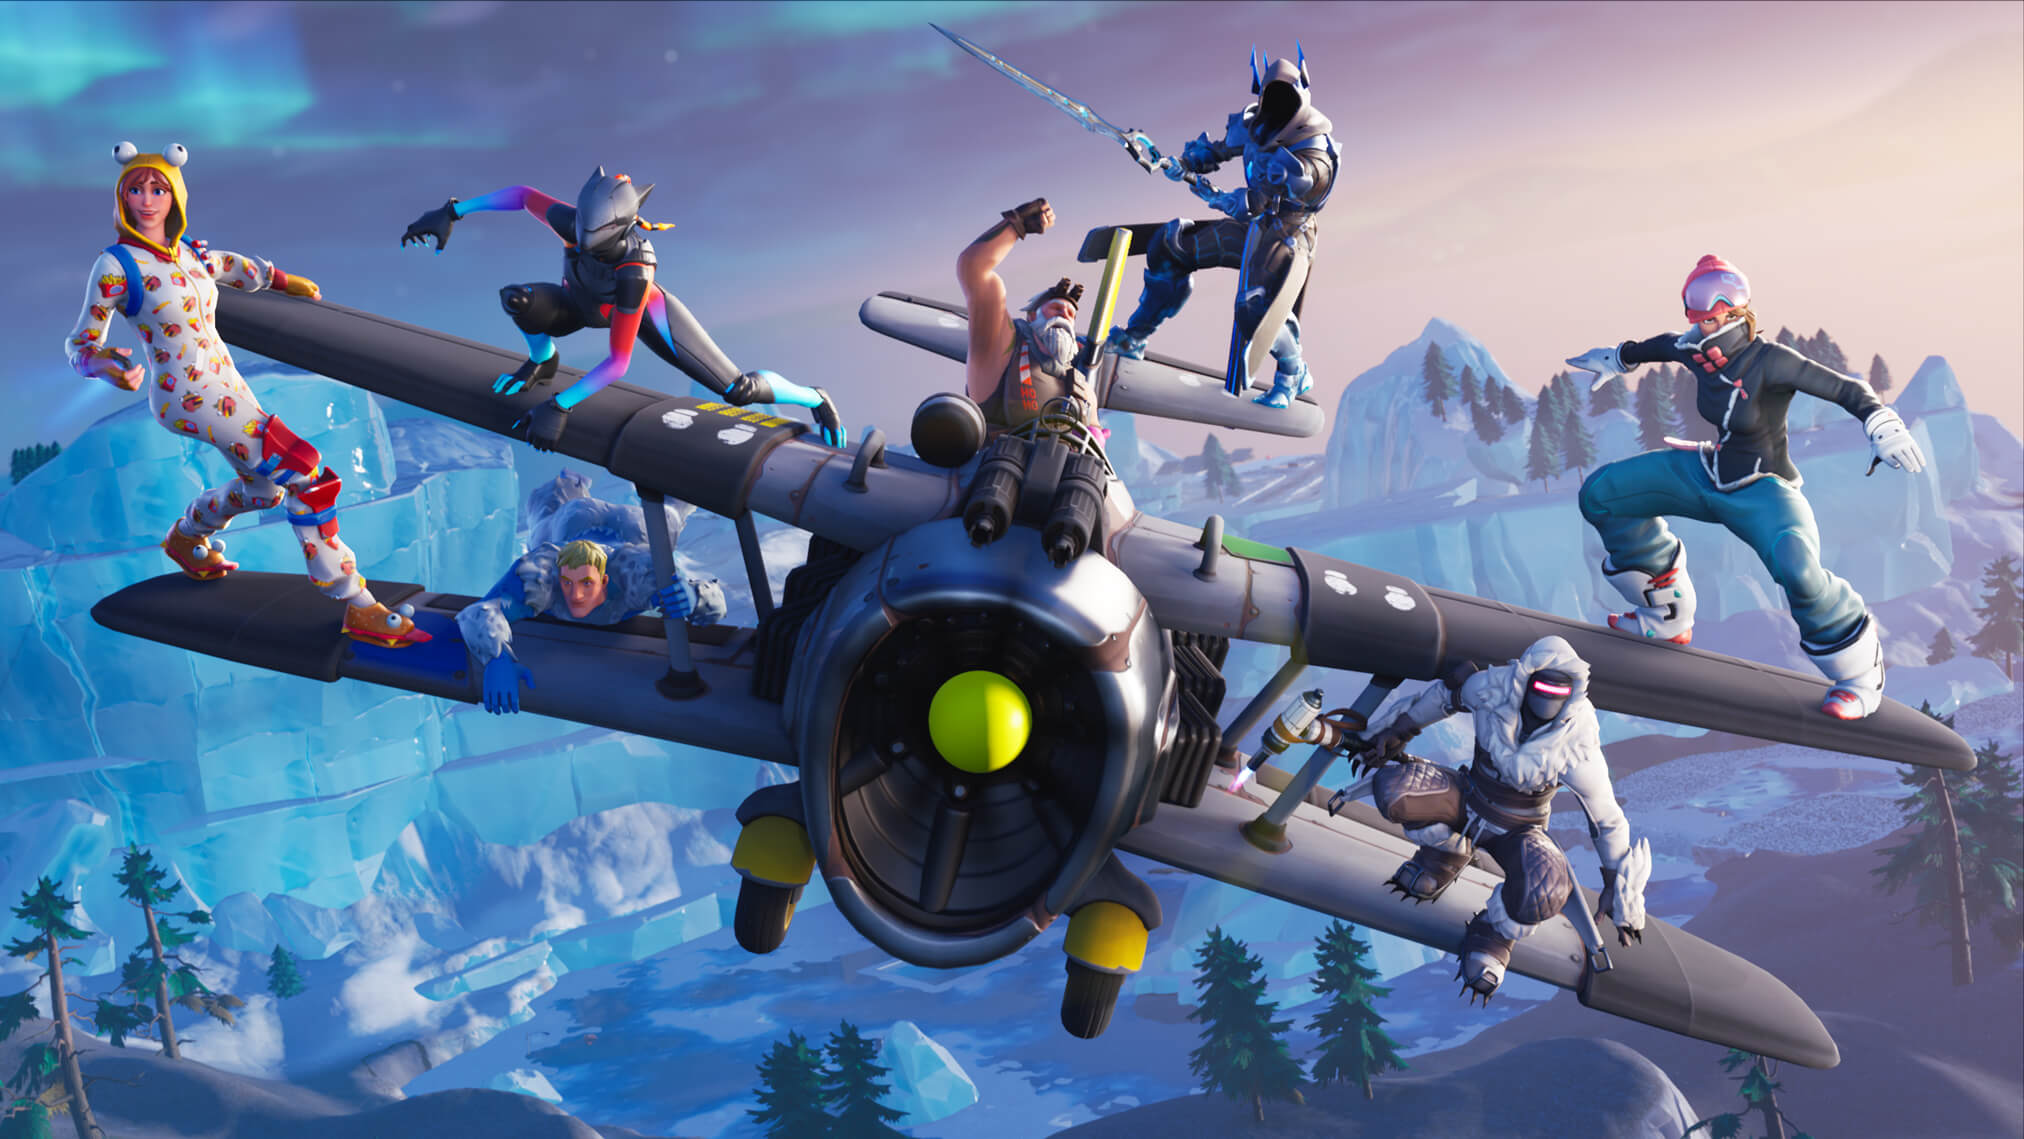 Middle East Fortnite Players Call for Dedicated Server